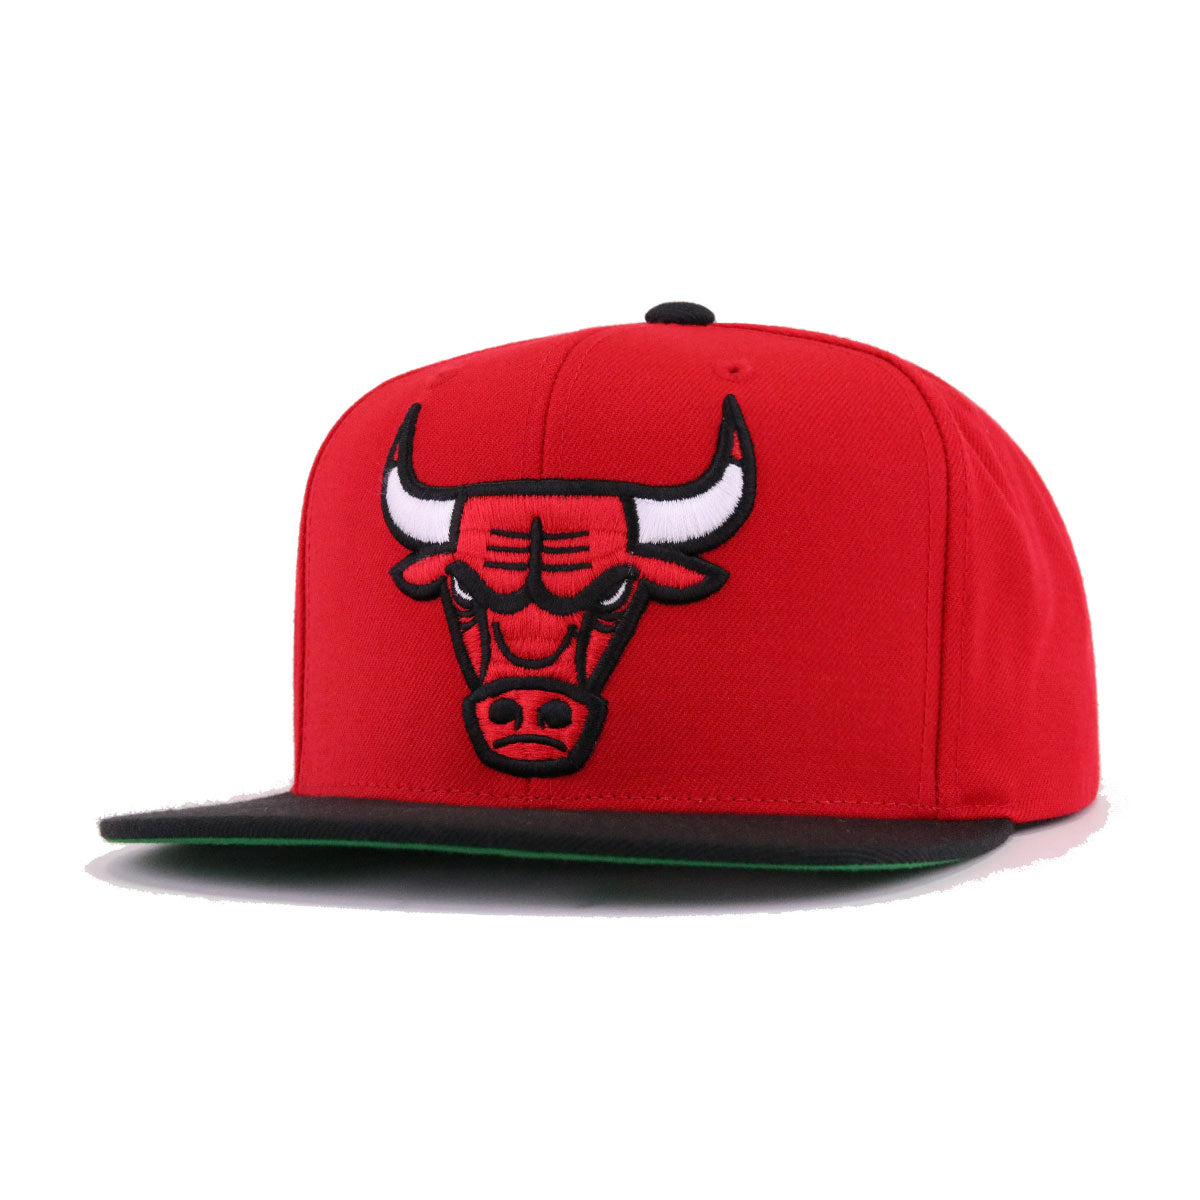 c159ffa809e ... discount code for chicago bulls scarlet black mitchell and ness snapback  3fbba 186f5